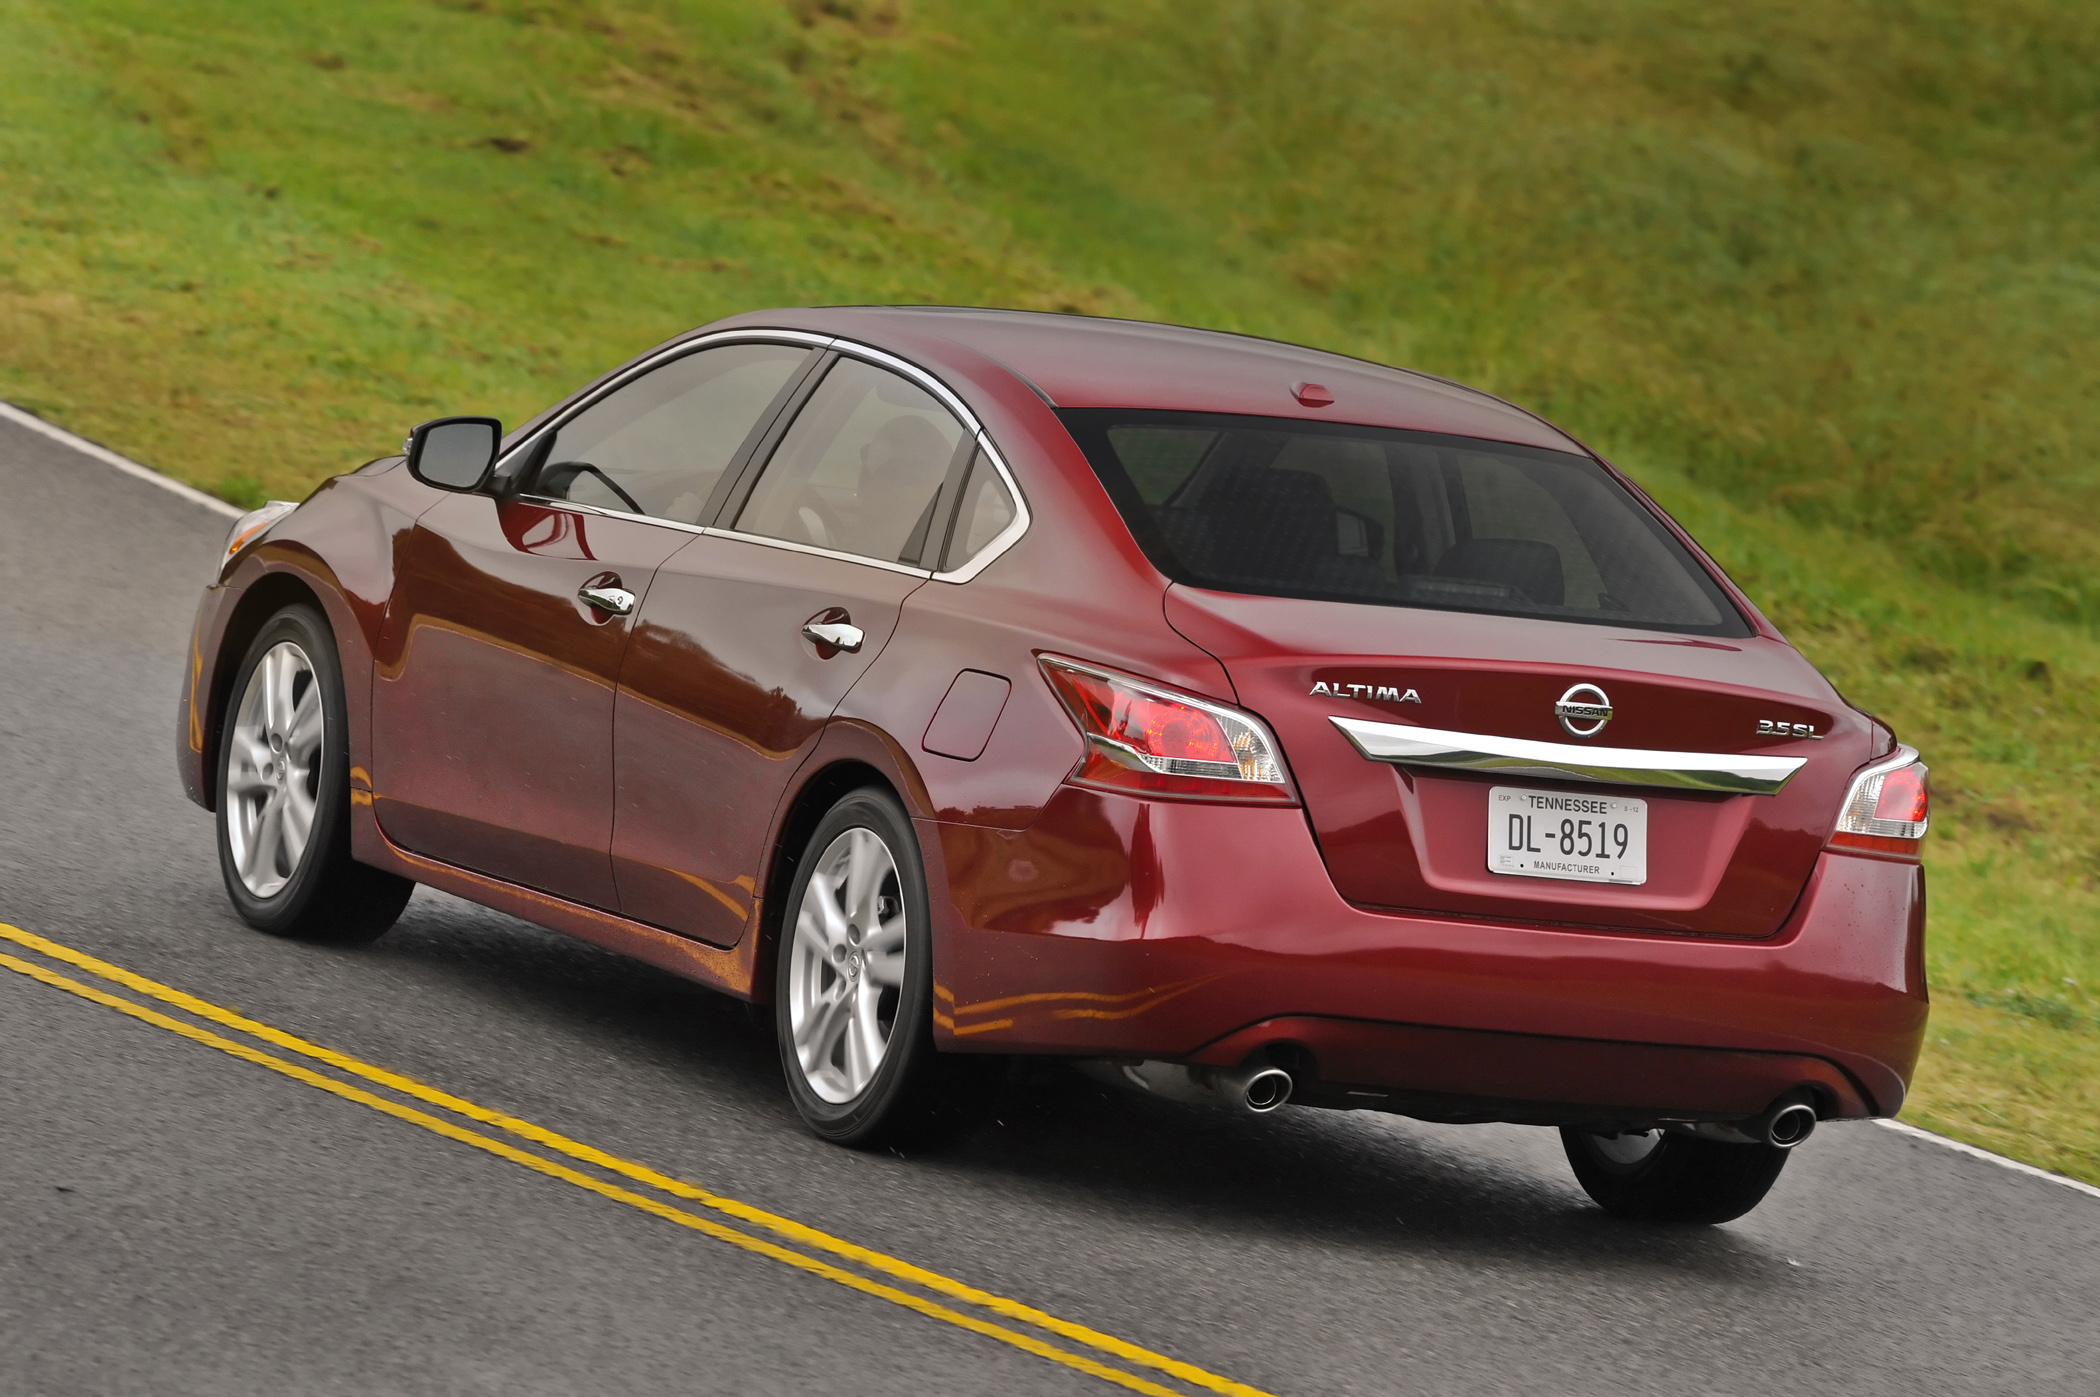 2013 nissan altima all new sedan earns 38 mpg new on. Black Bedroom Furniture Sets. Home Design Ideas